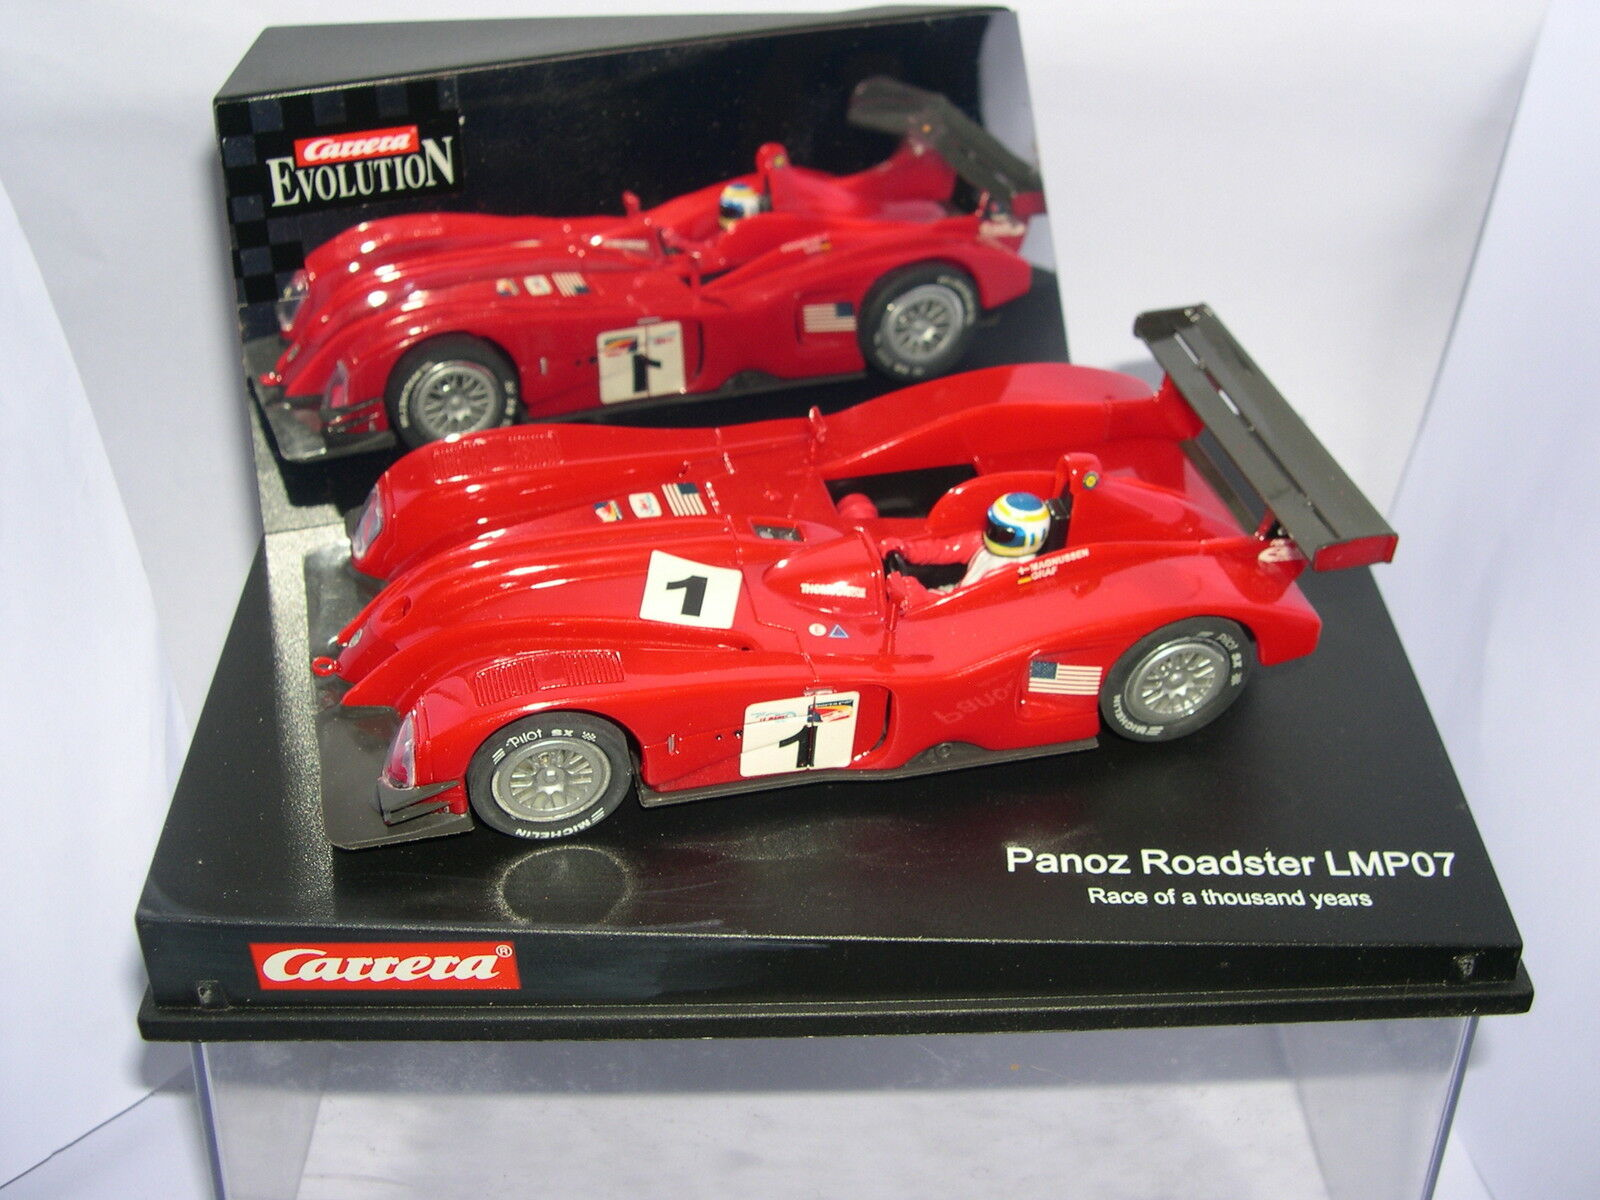 CARRERA CARRERA CARRERA EVOLUTION 25430 SLOT CAR PANOZ LMP07  1 GARA A THOUSAND YEAR MAGNUSSEN 145fb0